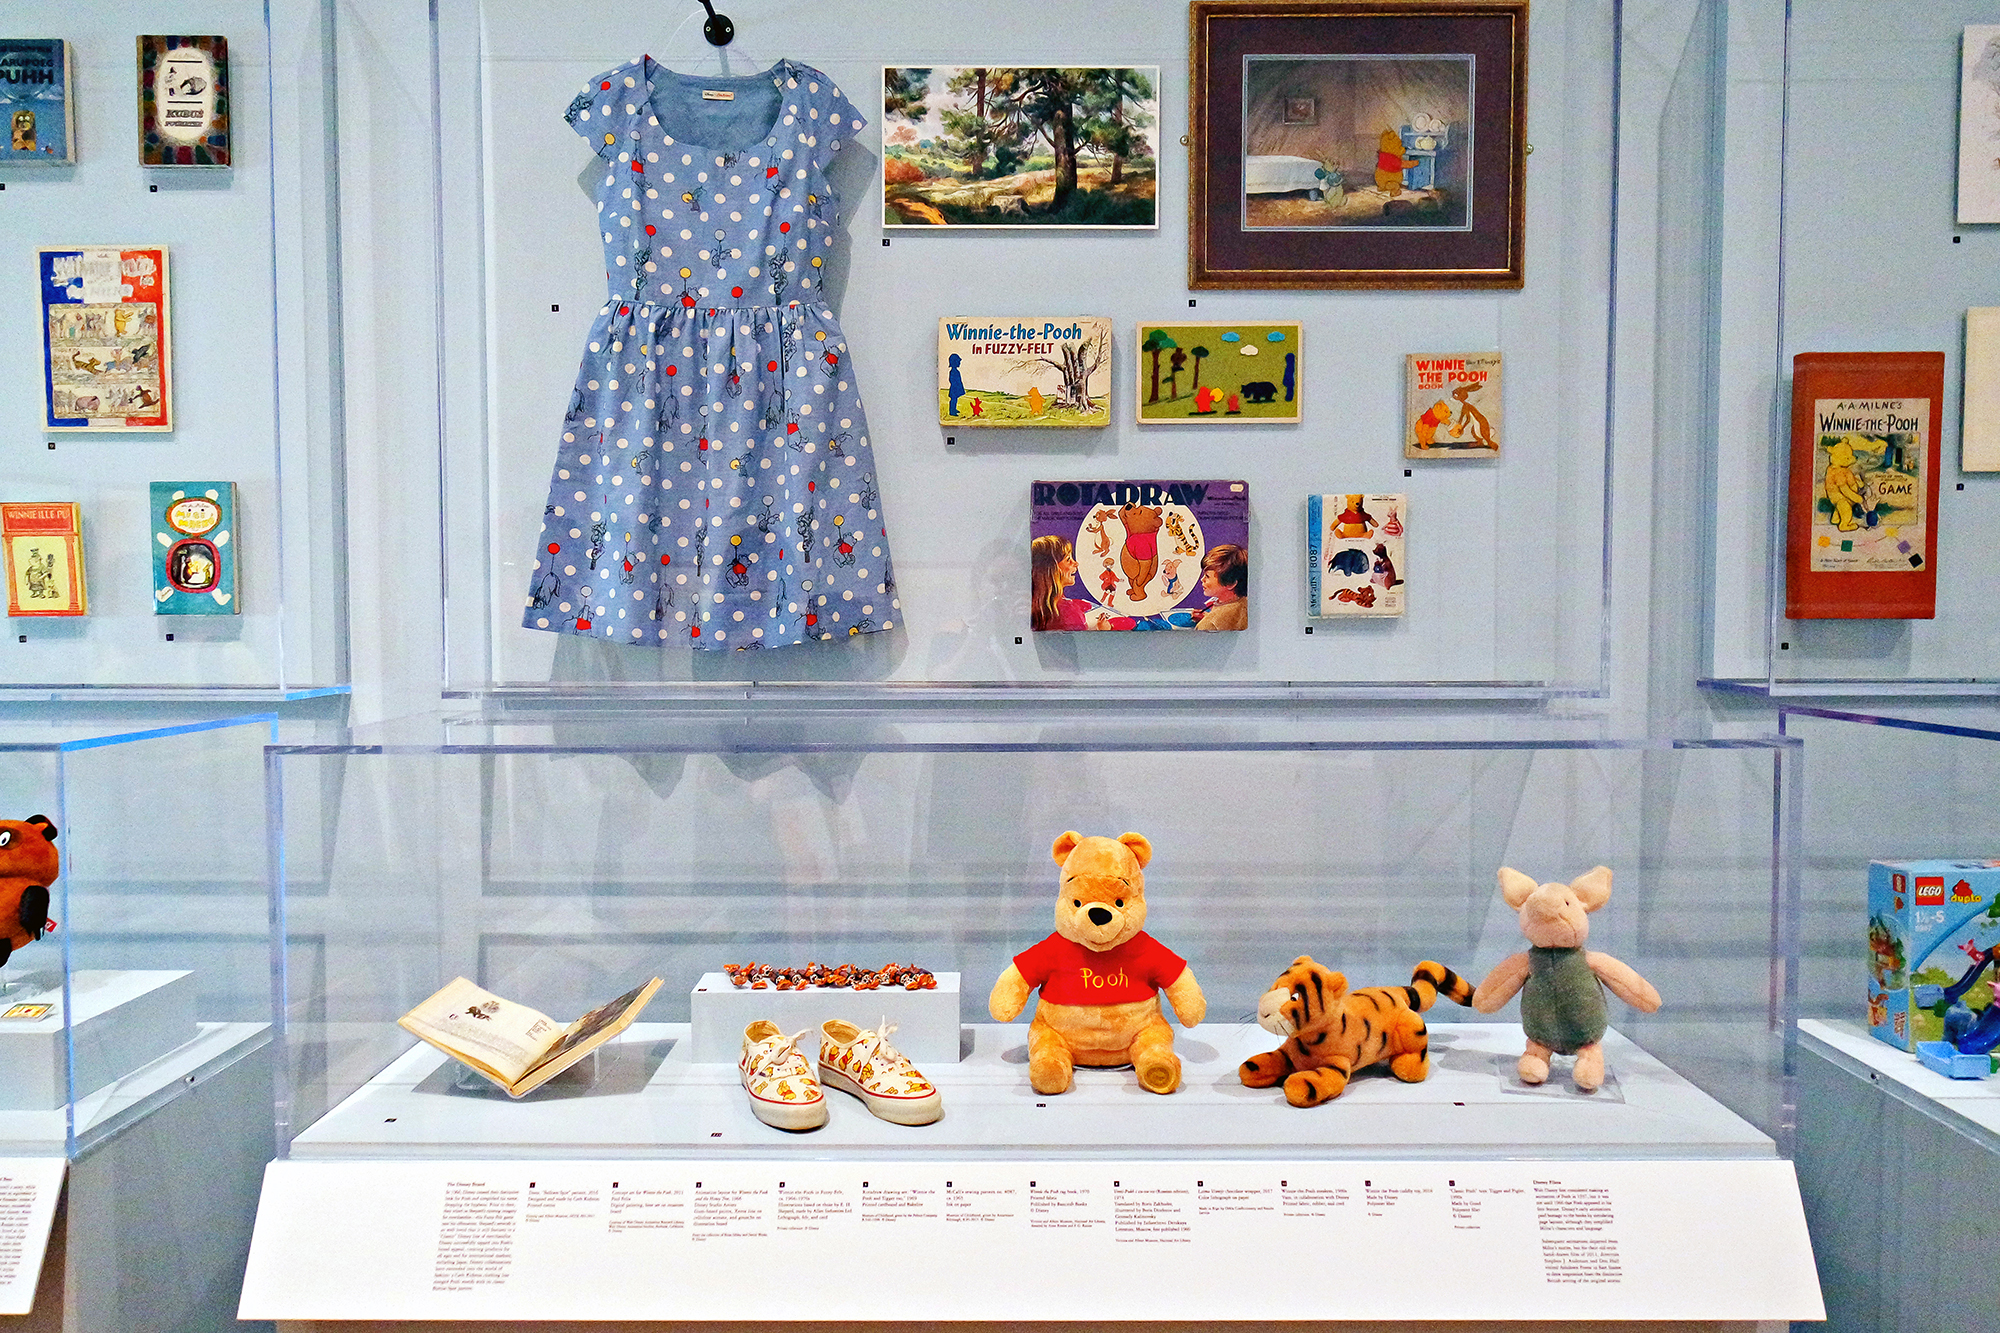 This display from the Winnie-the-Pooh: Exploring a Classic exhibit at the High Museum of Art Atlanta features Winnie-the-Pooh, Tigger, and Piglet stuffed animals, a dress, shoes, artwork, games, books, and more.